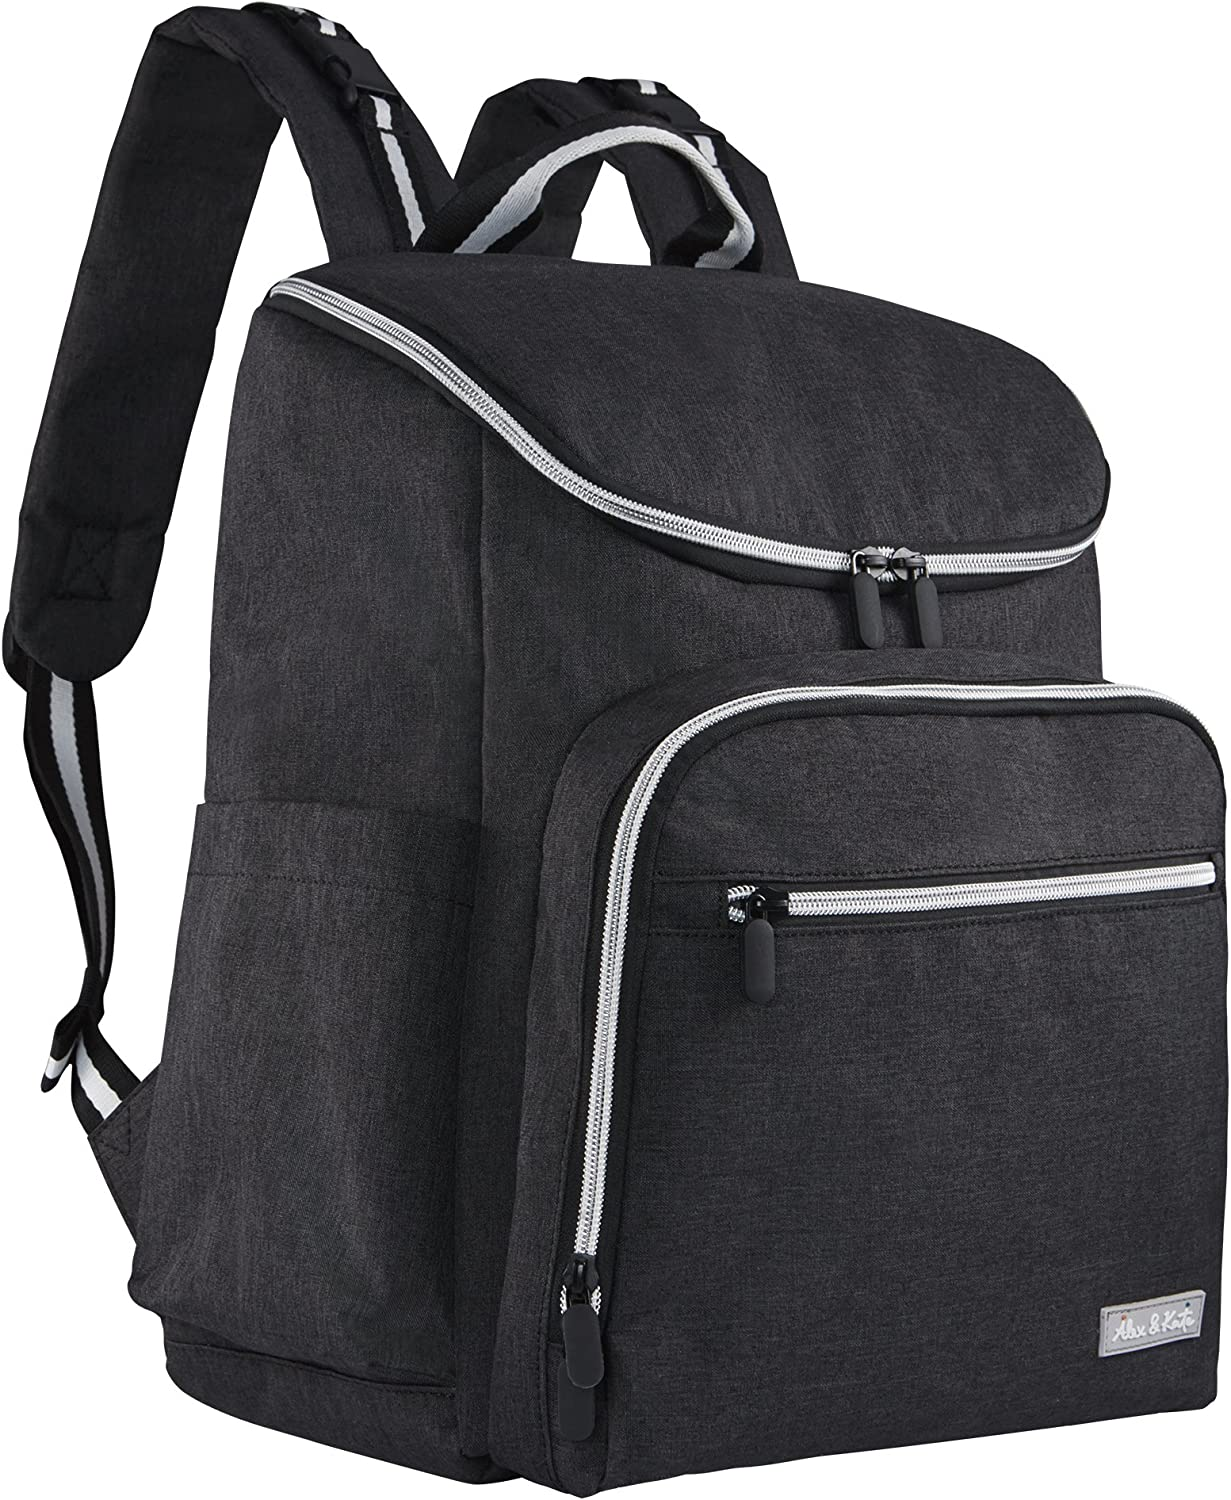 Diaper Backpack by Alex & Kate - Stylish Multi-Function Nappy Bag for Mom